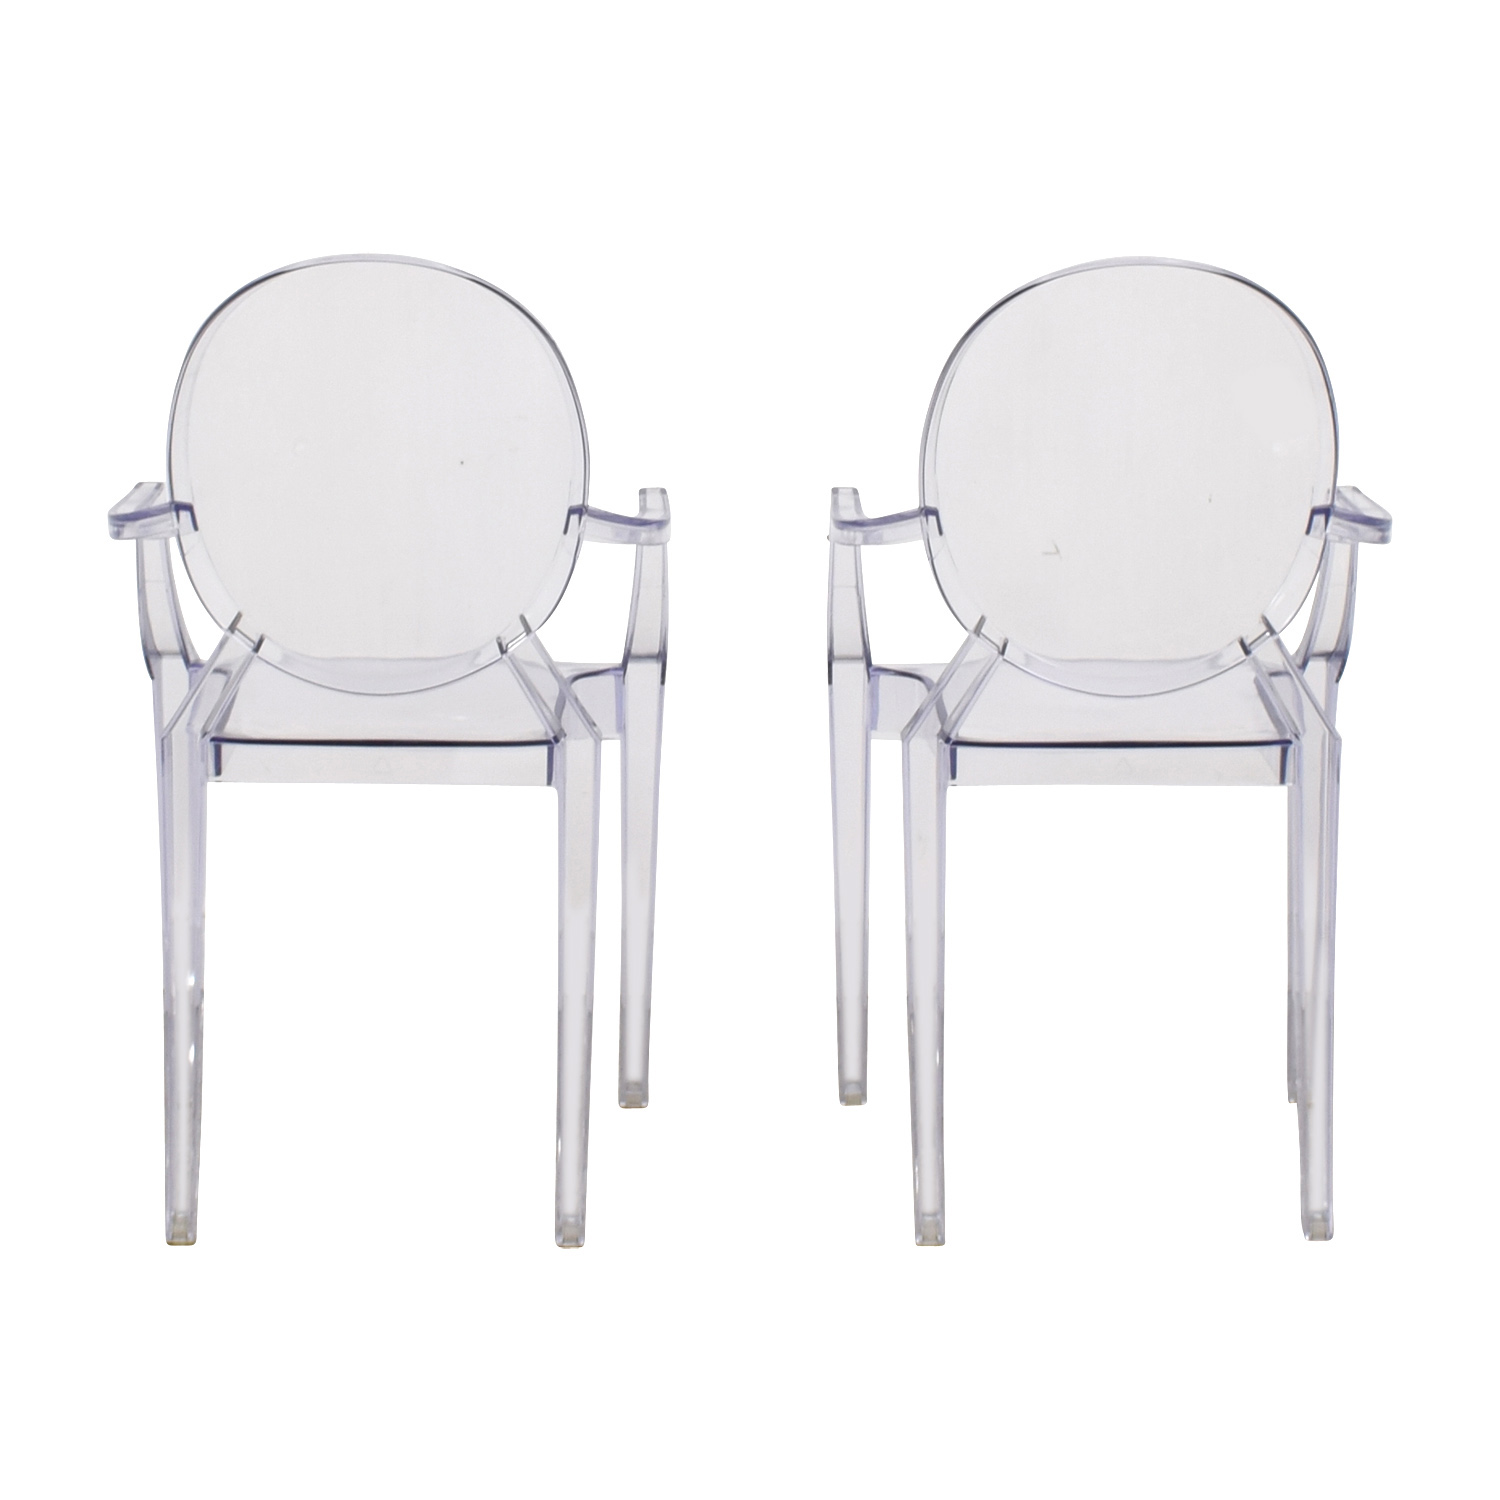 buy CB2 CB2 Acrylic Chairs online